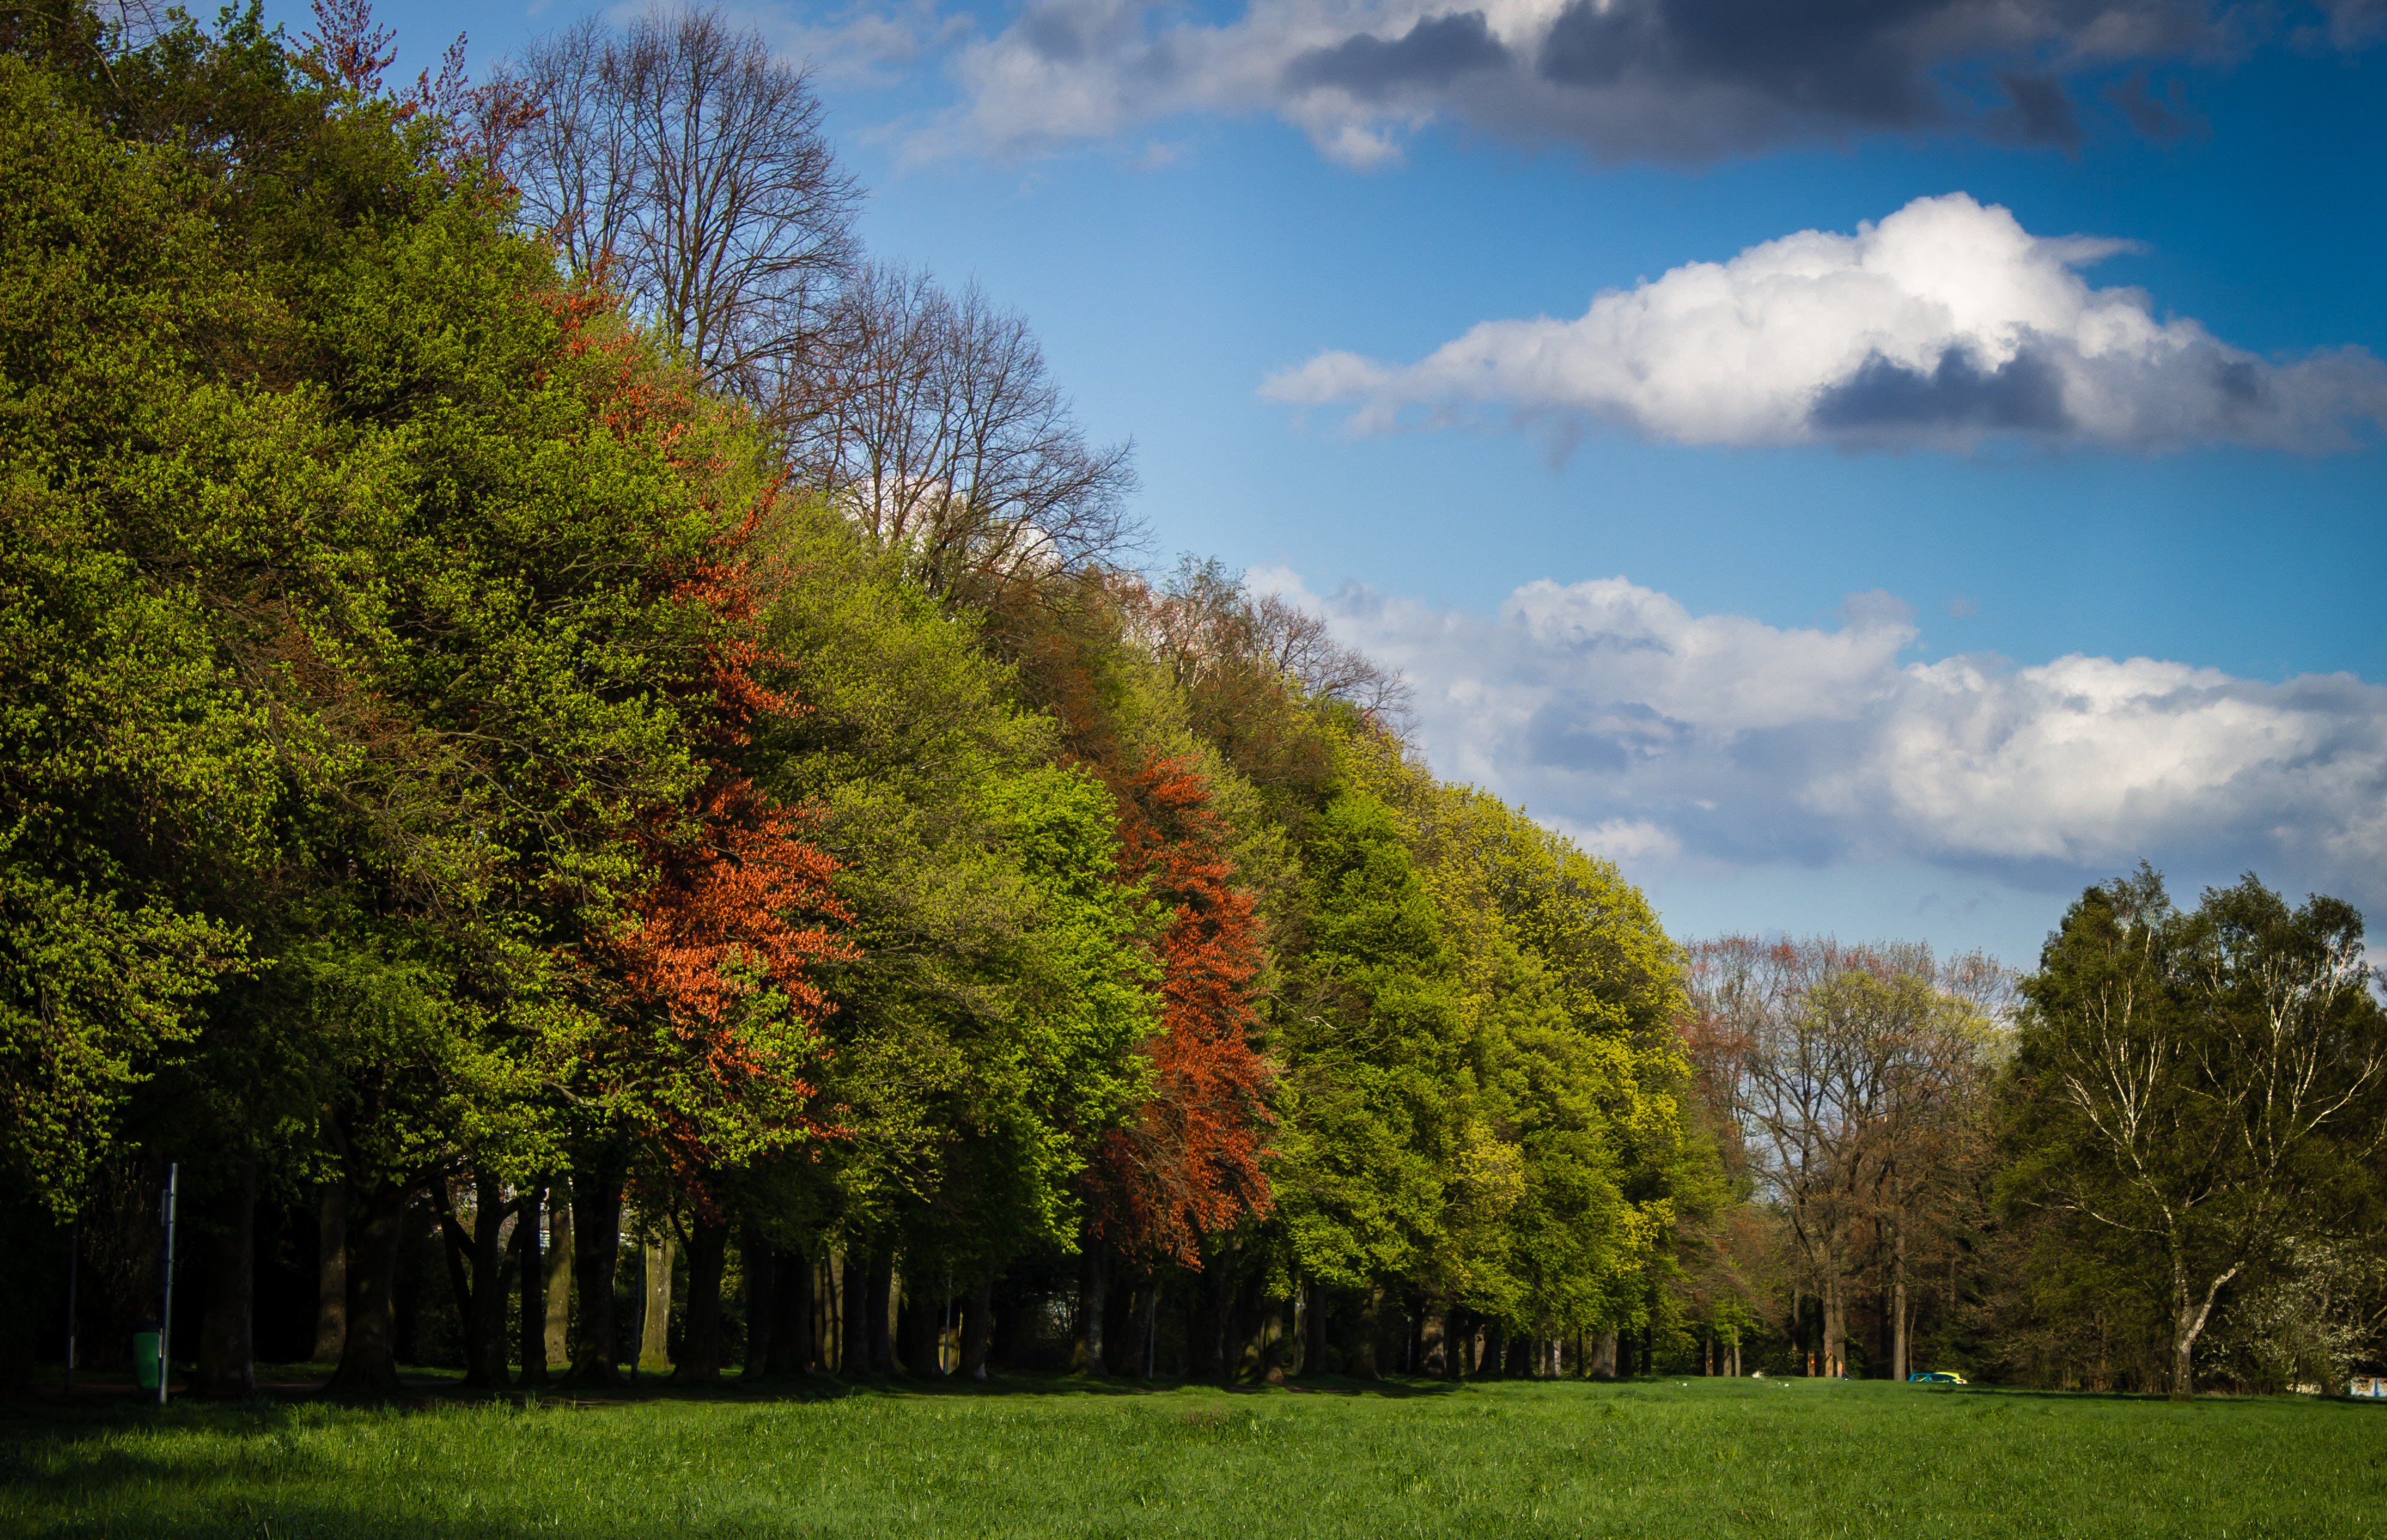 Fall Foliage Wallpaper Green And Red Tress Under Blue Sky And White Clouds During